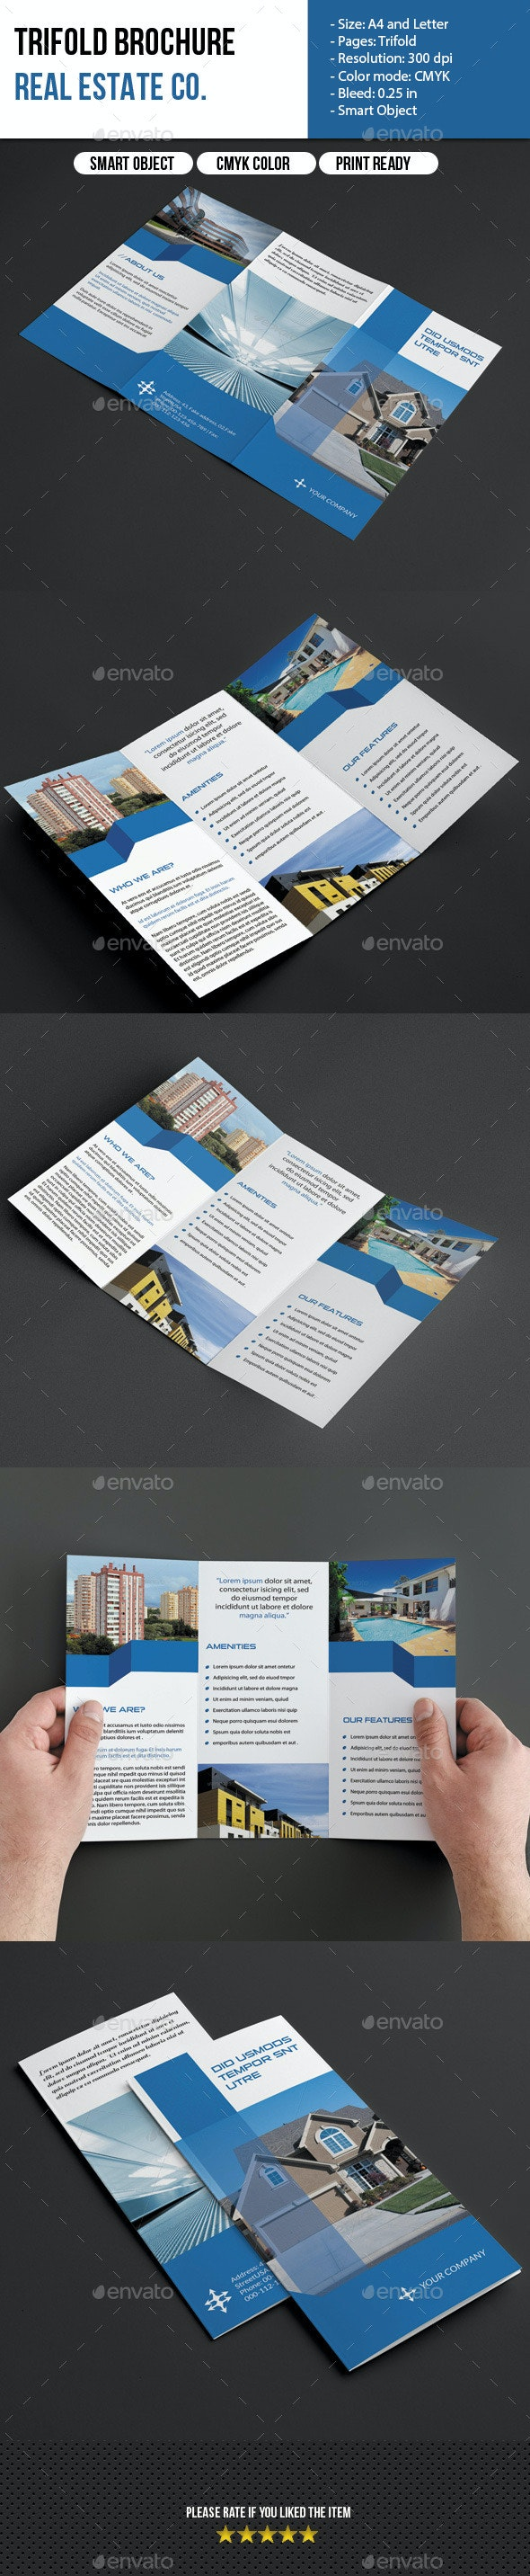 Trifold Brochure-Real Estate - Corporate Brochures